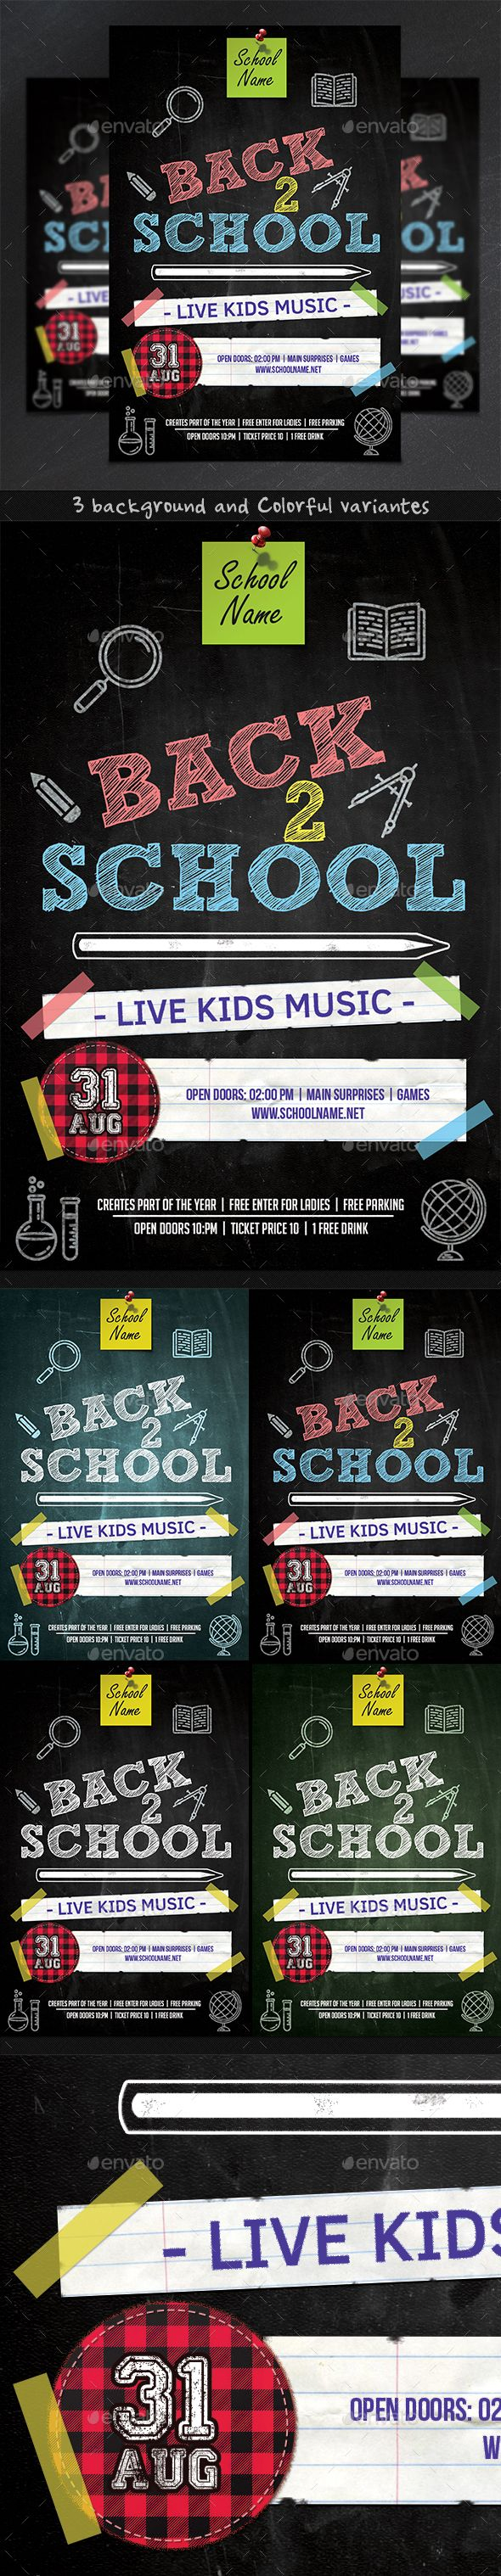 Back to School Flyer   PSD Template • Download ➝ https://graphicriver.net/item/back-to-school-flyer-template/17028627?ref=pxcr